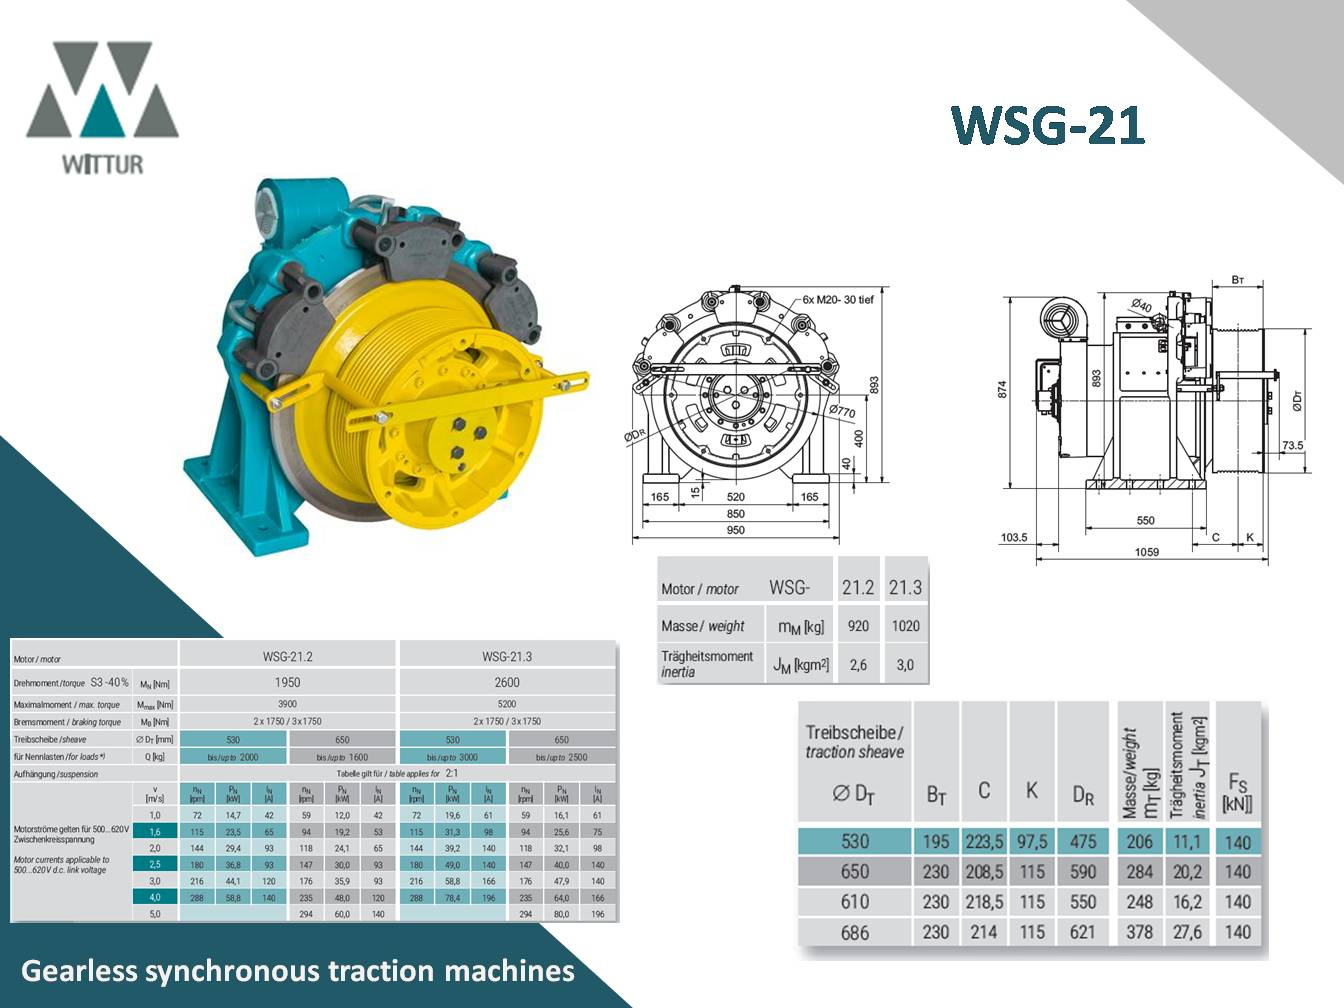 http://aasansor.ir/images/product/3_type_of_parts/1_motor/2_gearboxless/1_germany/witur/Slide2-1.jpg